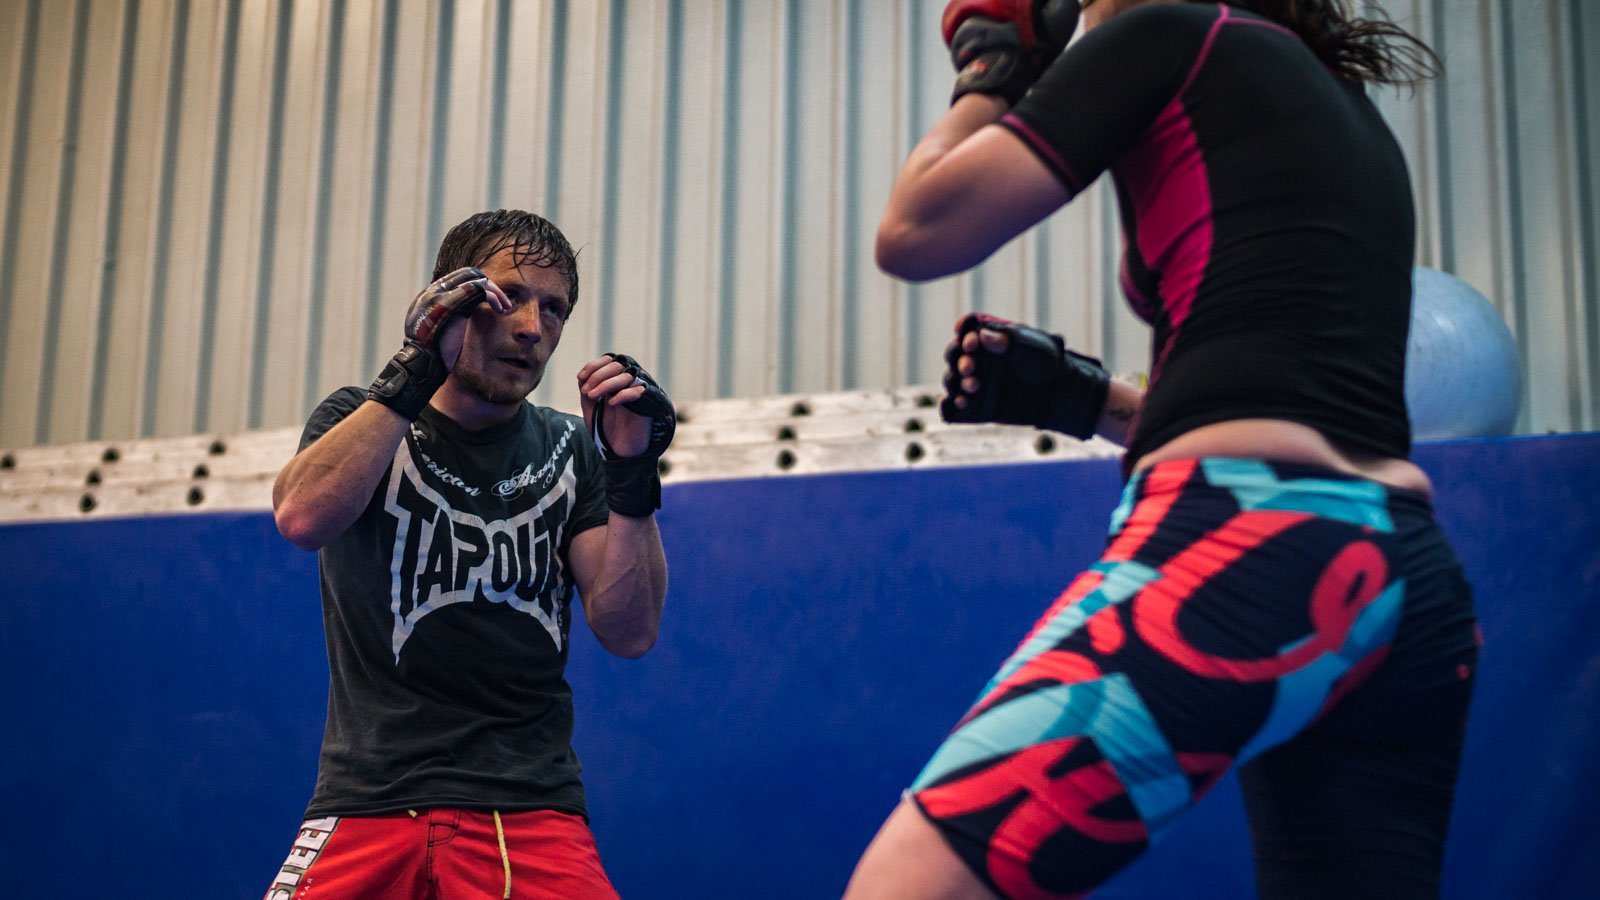 Dan and Lucie sparring MMA